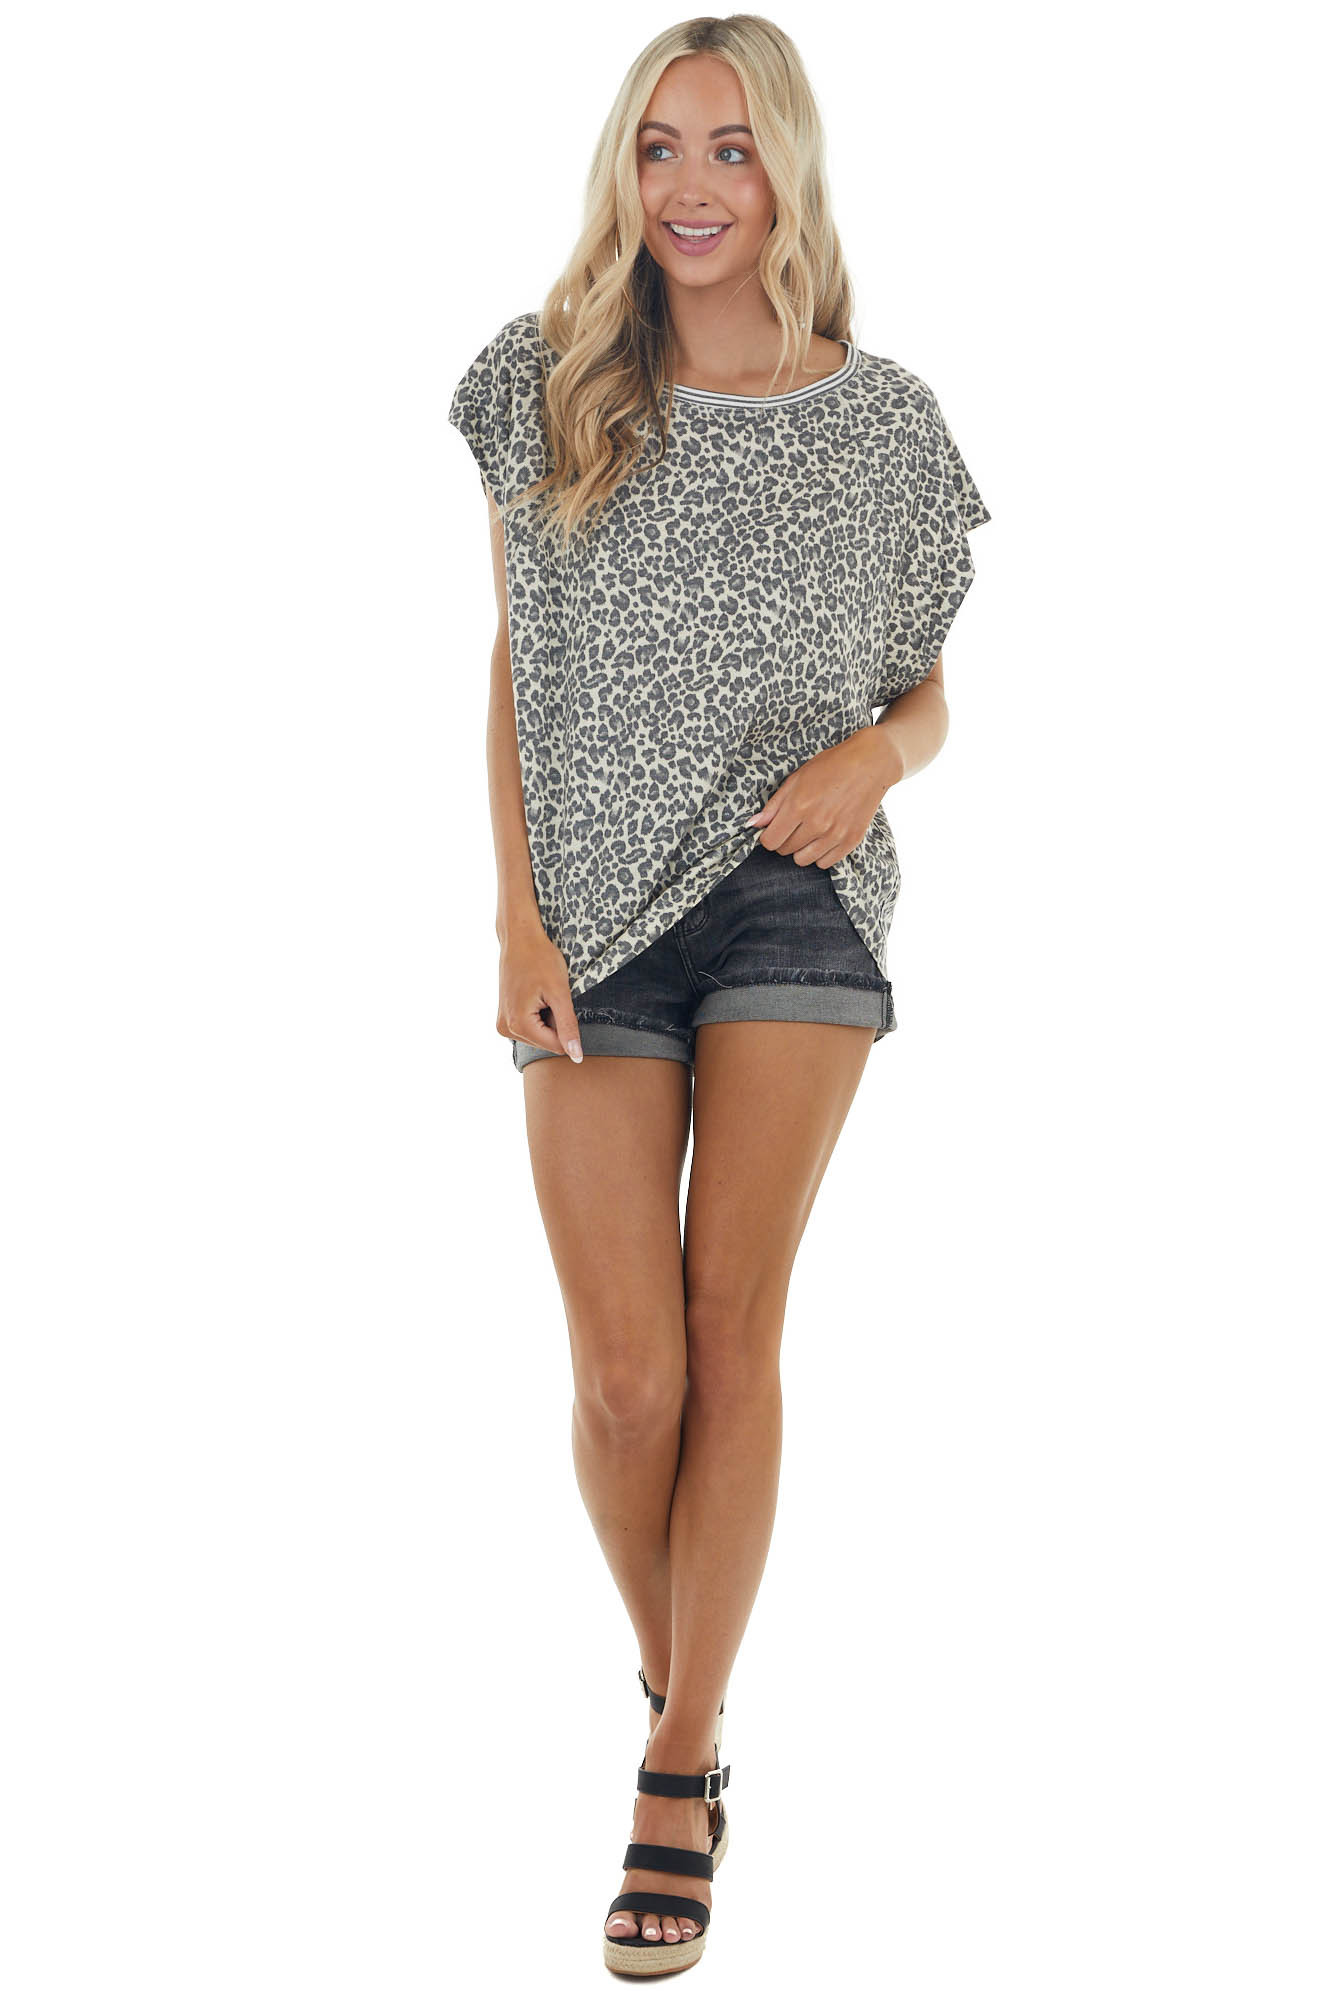 Sand Leopard Print Short Sleeve Knit Top with Striped Detail